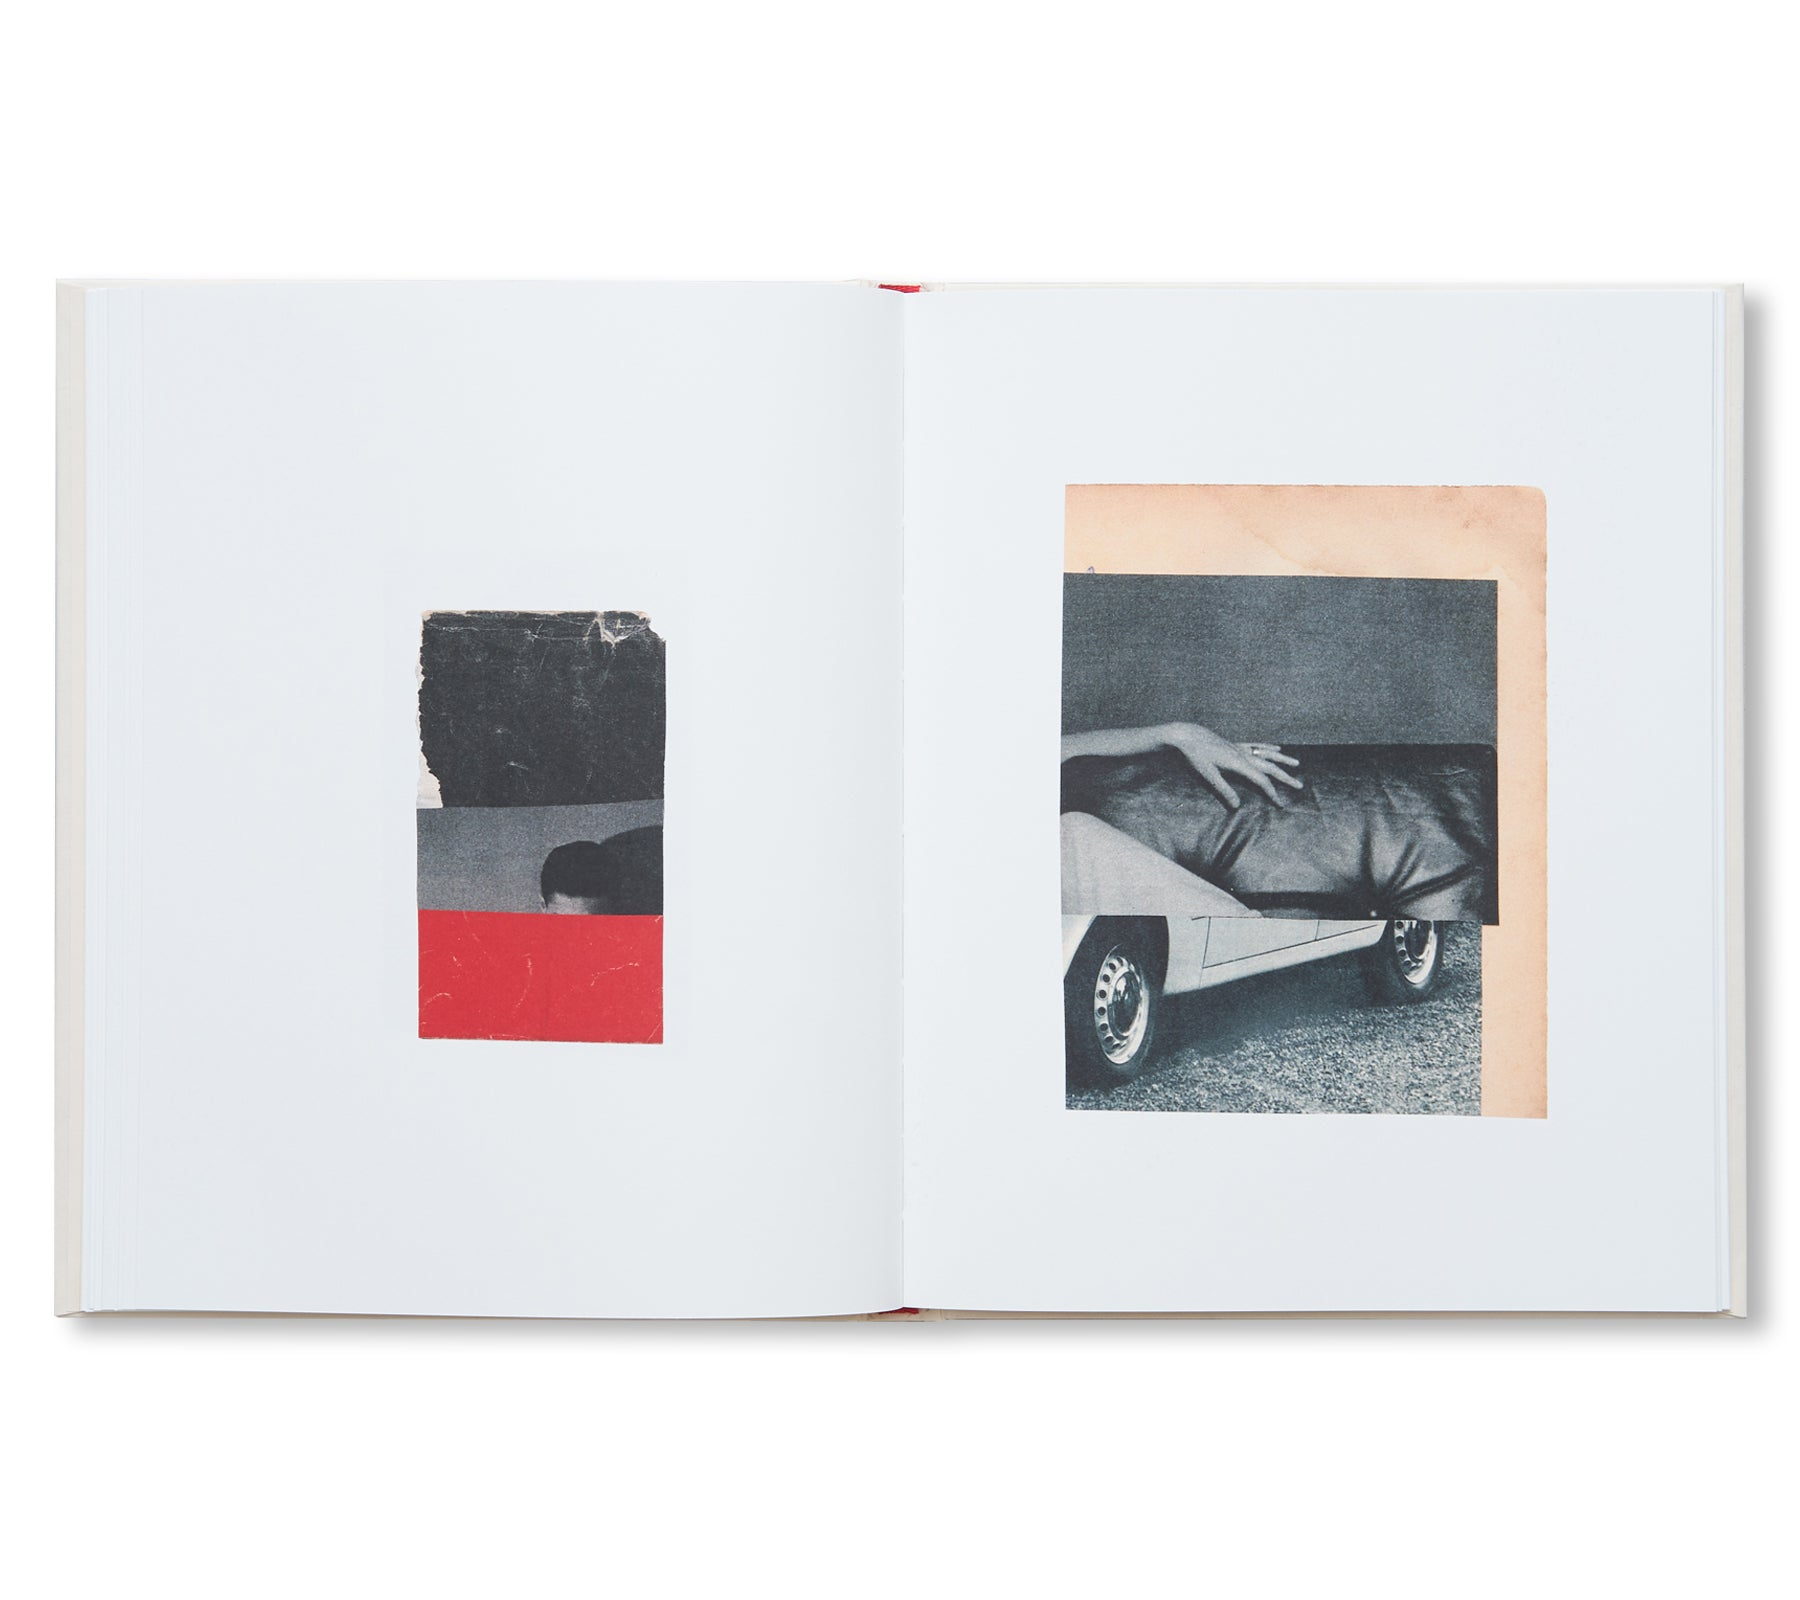 WHY I HATE CARS by Katrien De Blauwer